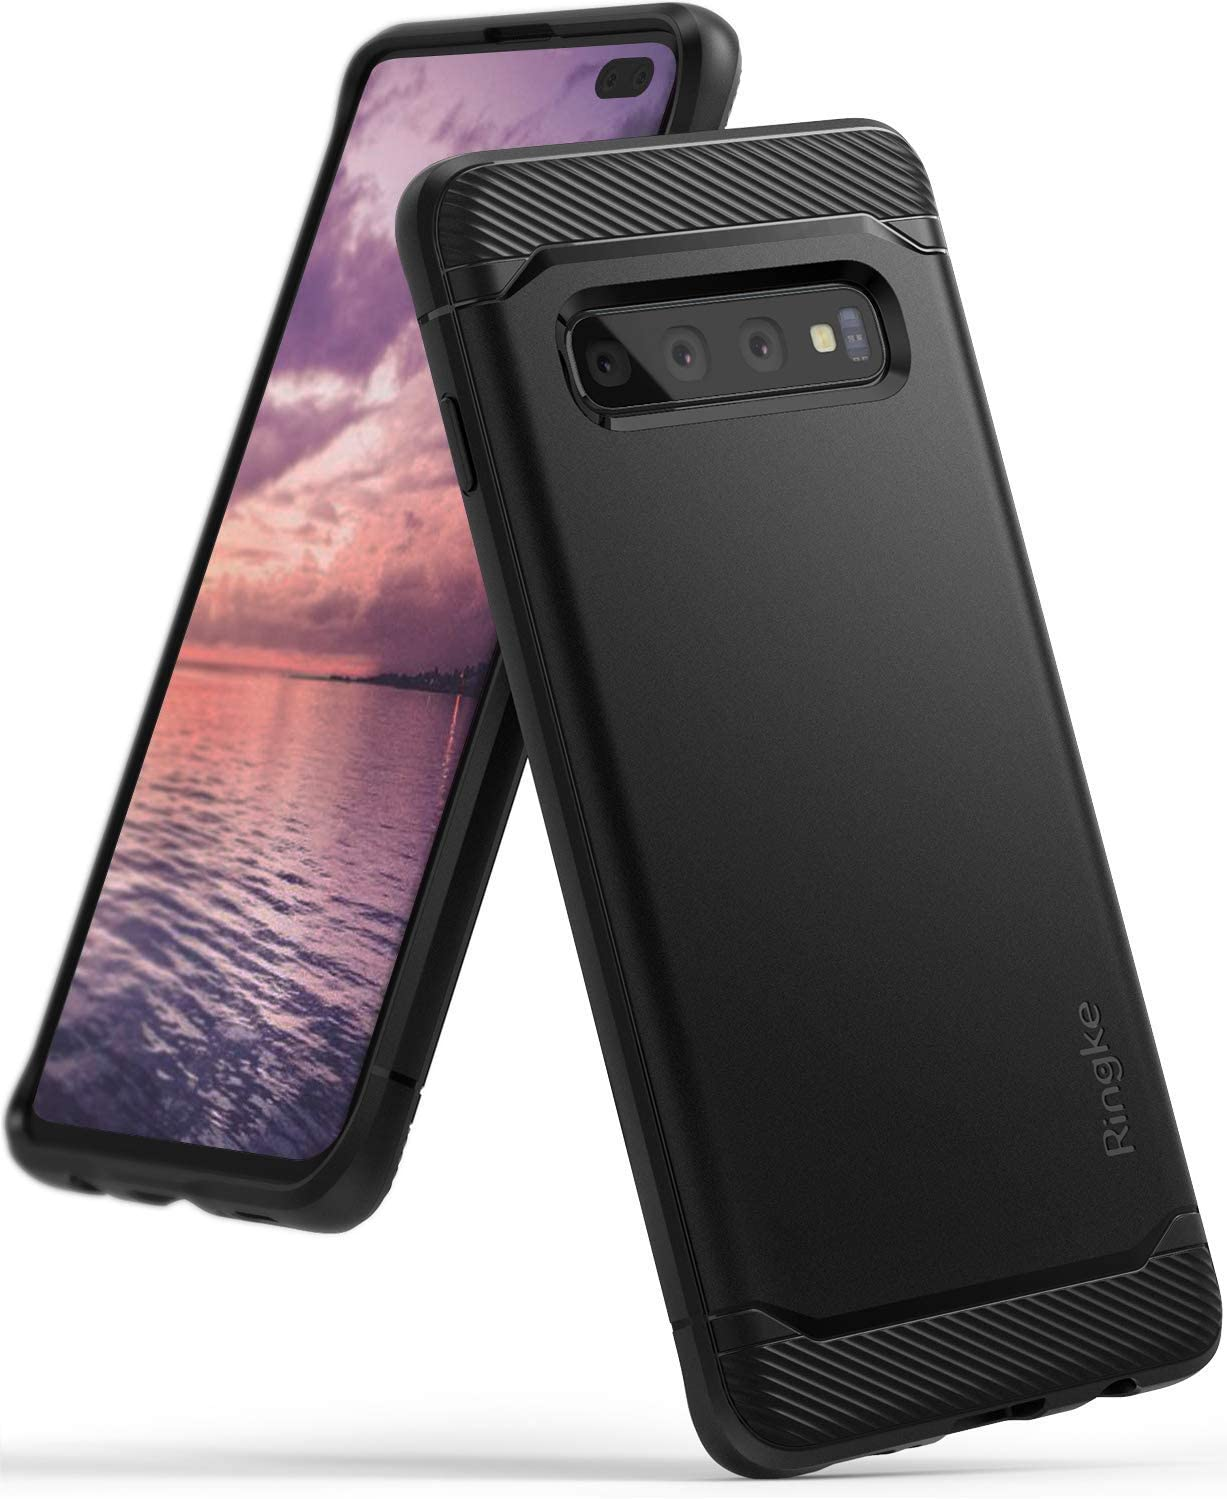 Ringke Onyx Compatible with Galaxy S10 Plus Case Extreme Tough Compatible Rugged Flexible Protection Durable Anti-Slip TPU Heavy Impact Shock Absorbent Case for Galaxy S10 Plus (6.4